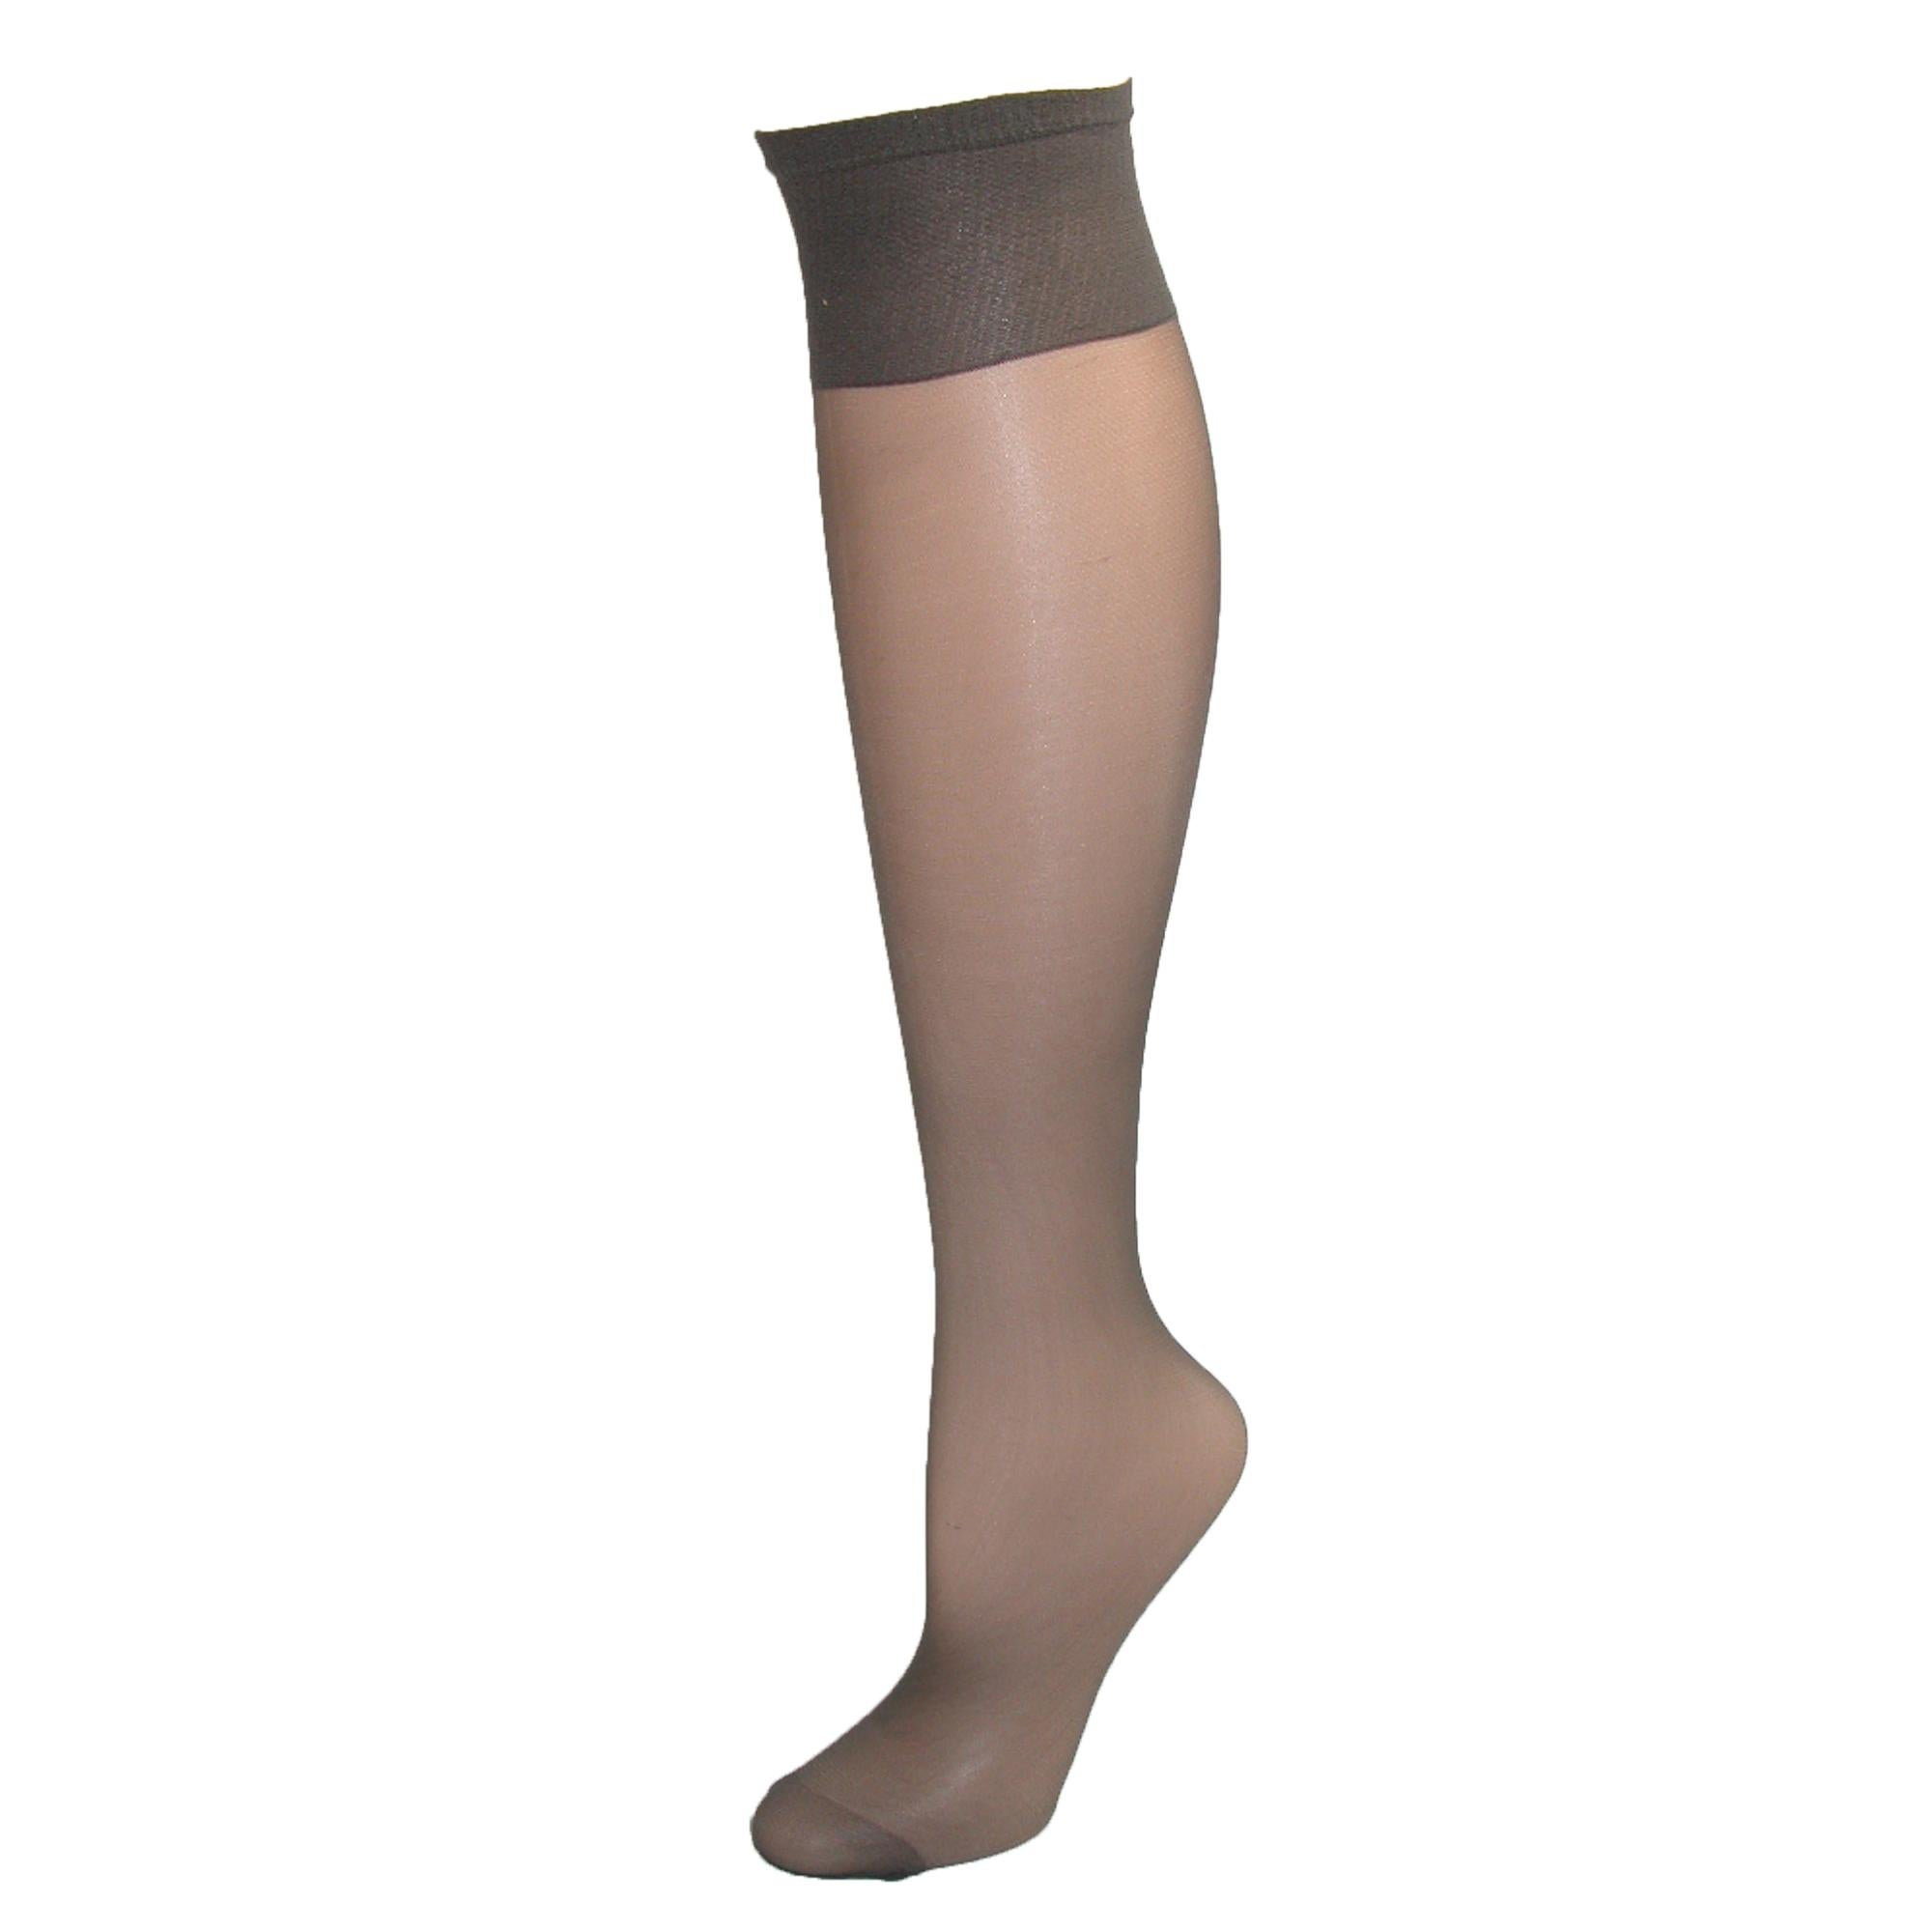 7407db309 Shop Hanes Women s Plus Size Nylon Sheer Knee High Socks (Pack of 2) - Free  Shipping On Orders Over  45 - Overstock - 14295547